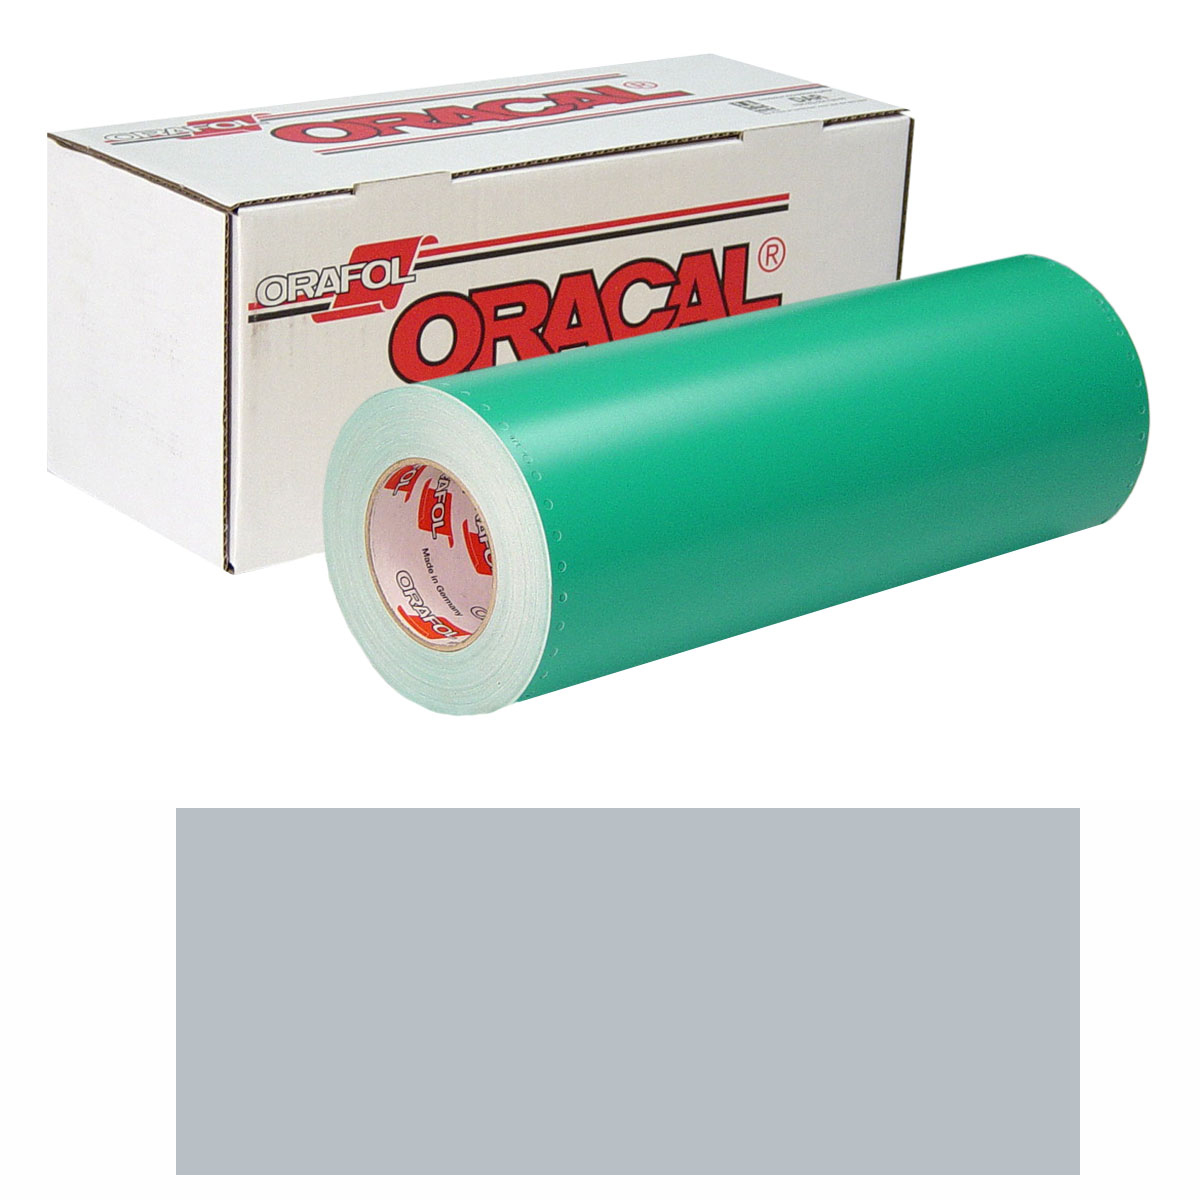 ORACAL 8500 Unp 24In X 50Yd 090 Silver